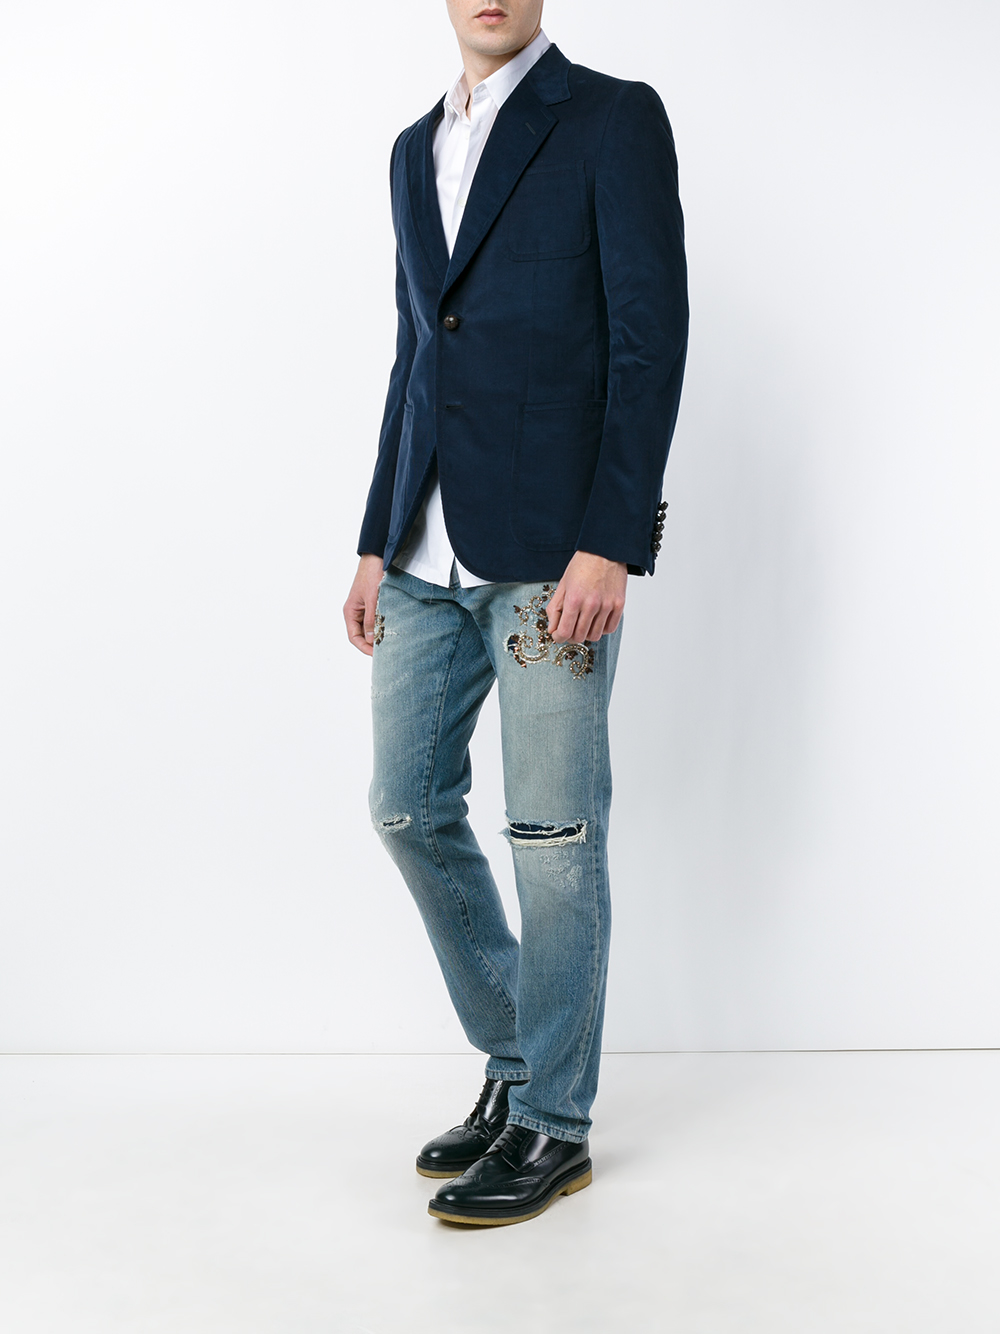 Dolce & Gabbana Denim Ripped And Embroidered Jeans in Denim (Black) for Men